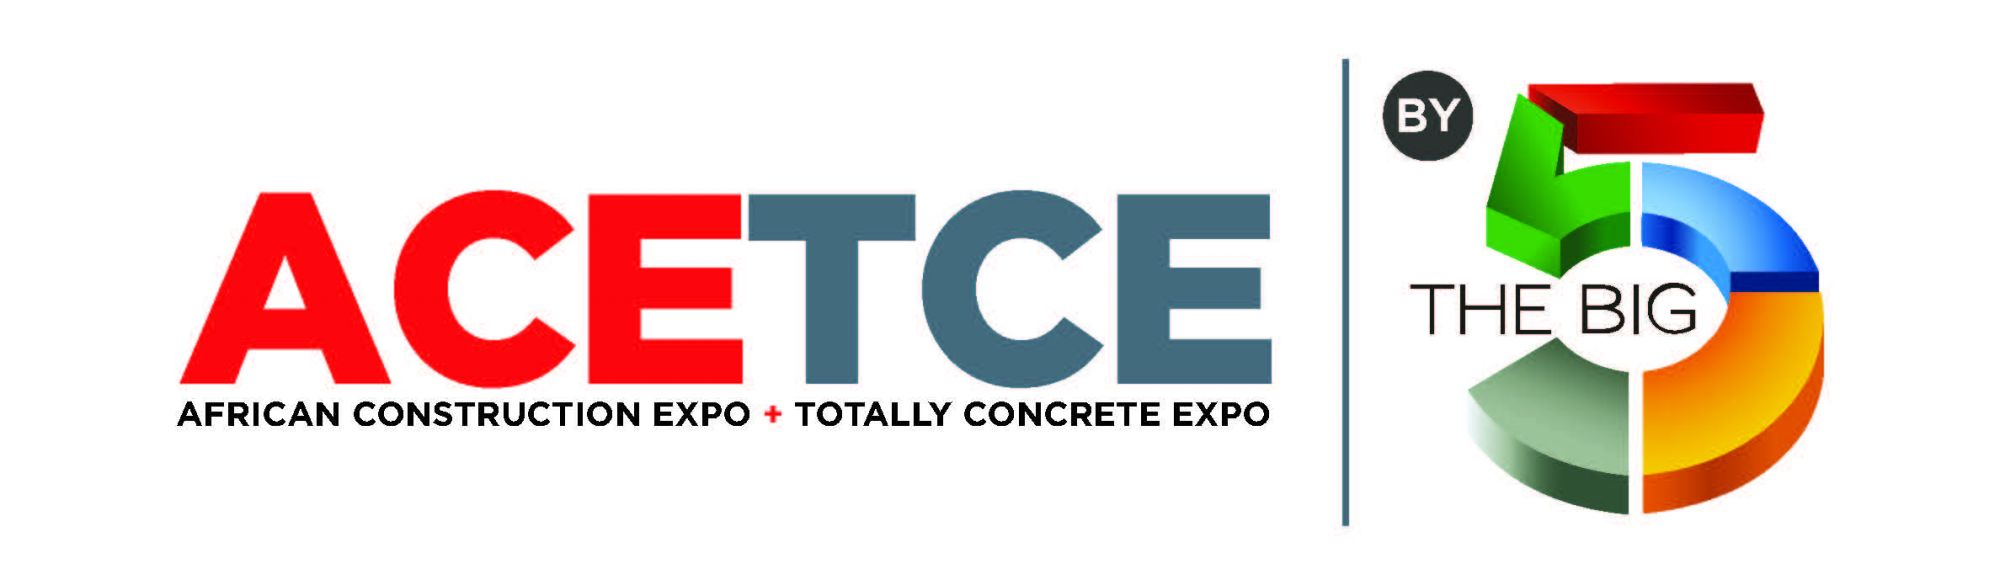 ACETCE-by-Big5 logo (2).jpg